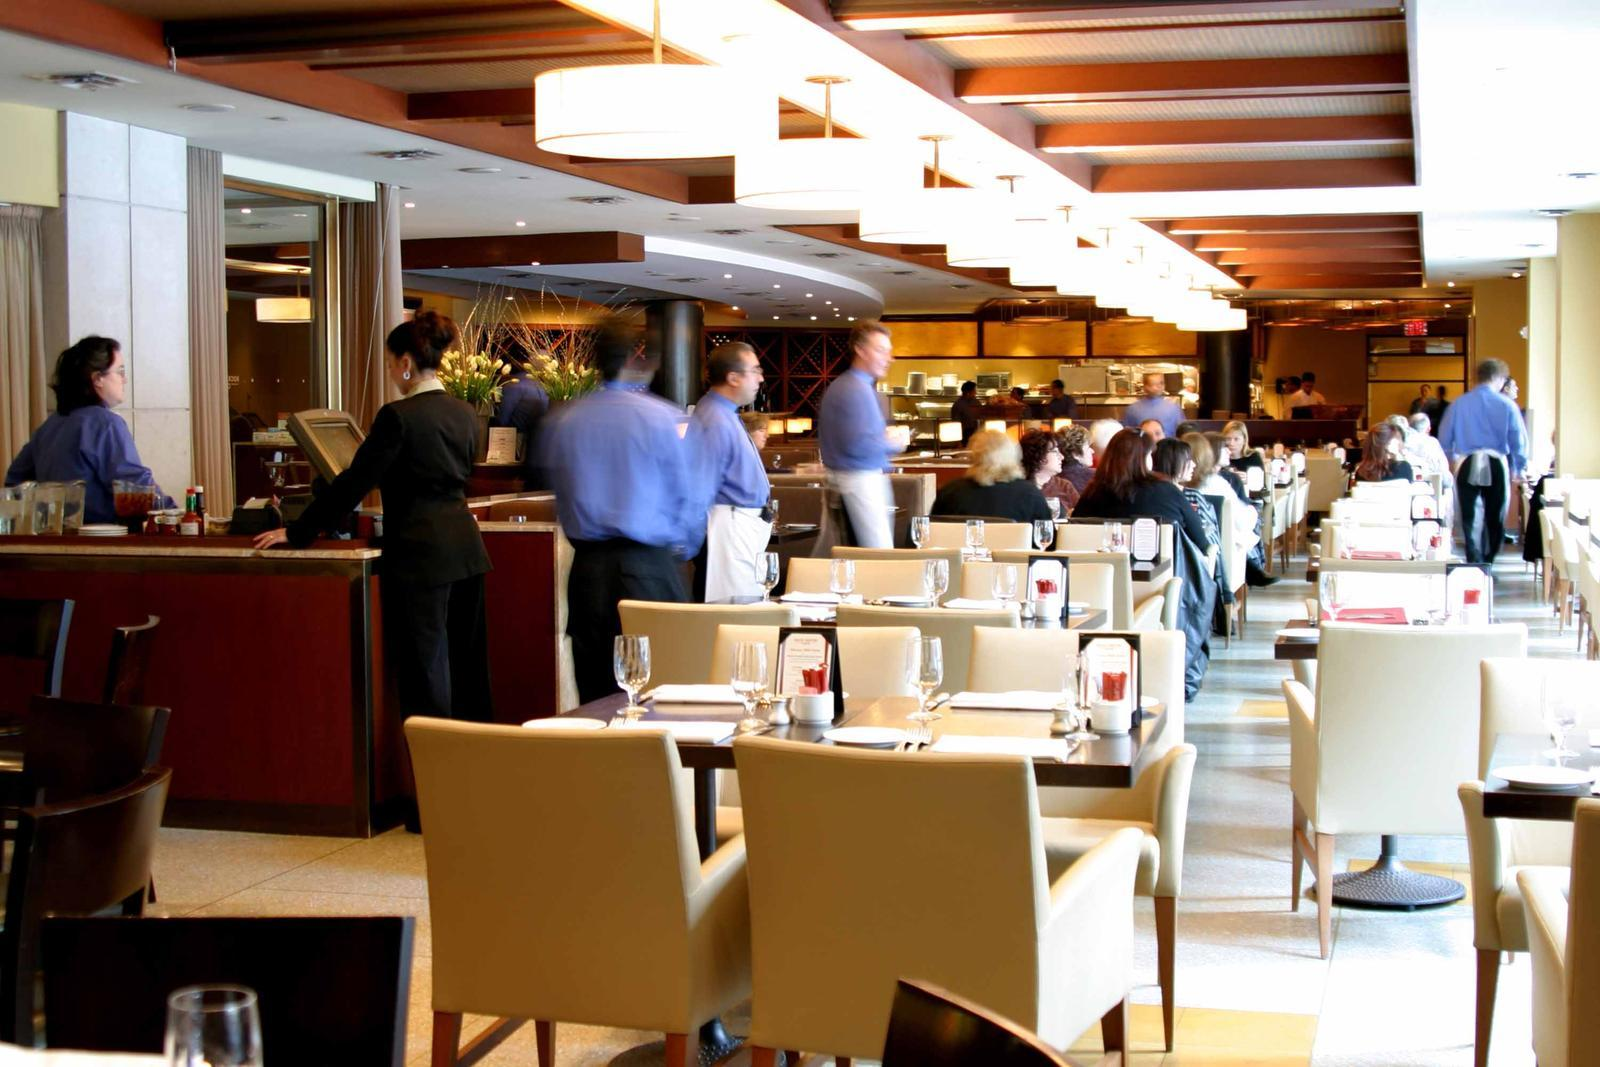 Cucina Restaurant Orchard Hills Rock Center Cafe In New York City Upscale Contemporary In Nyc